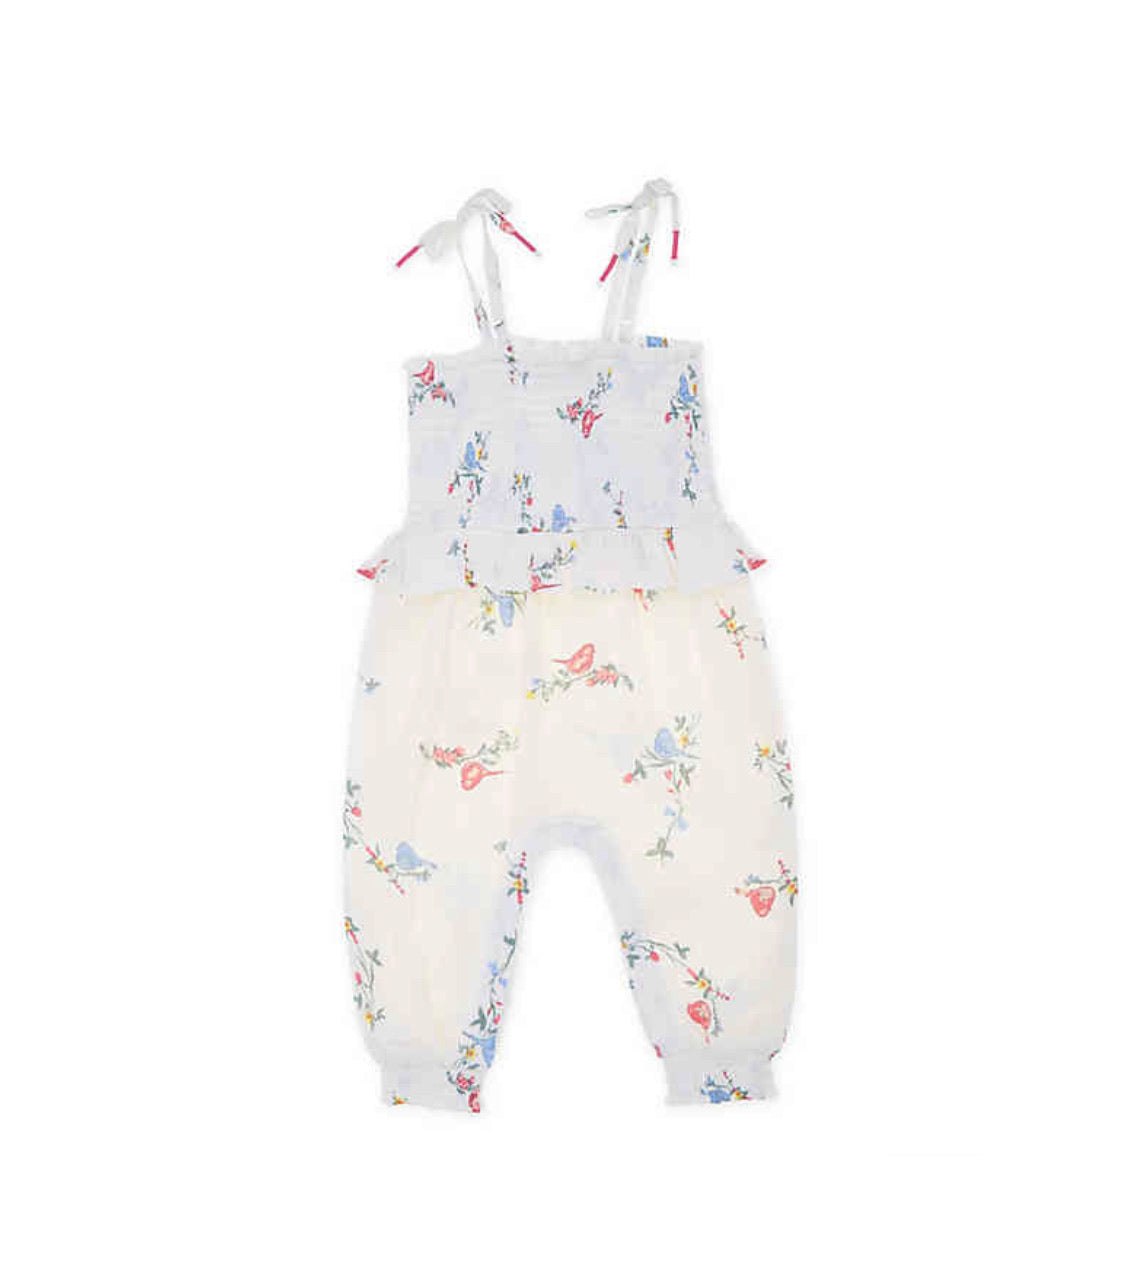 Sea Salt Romper